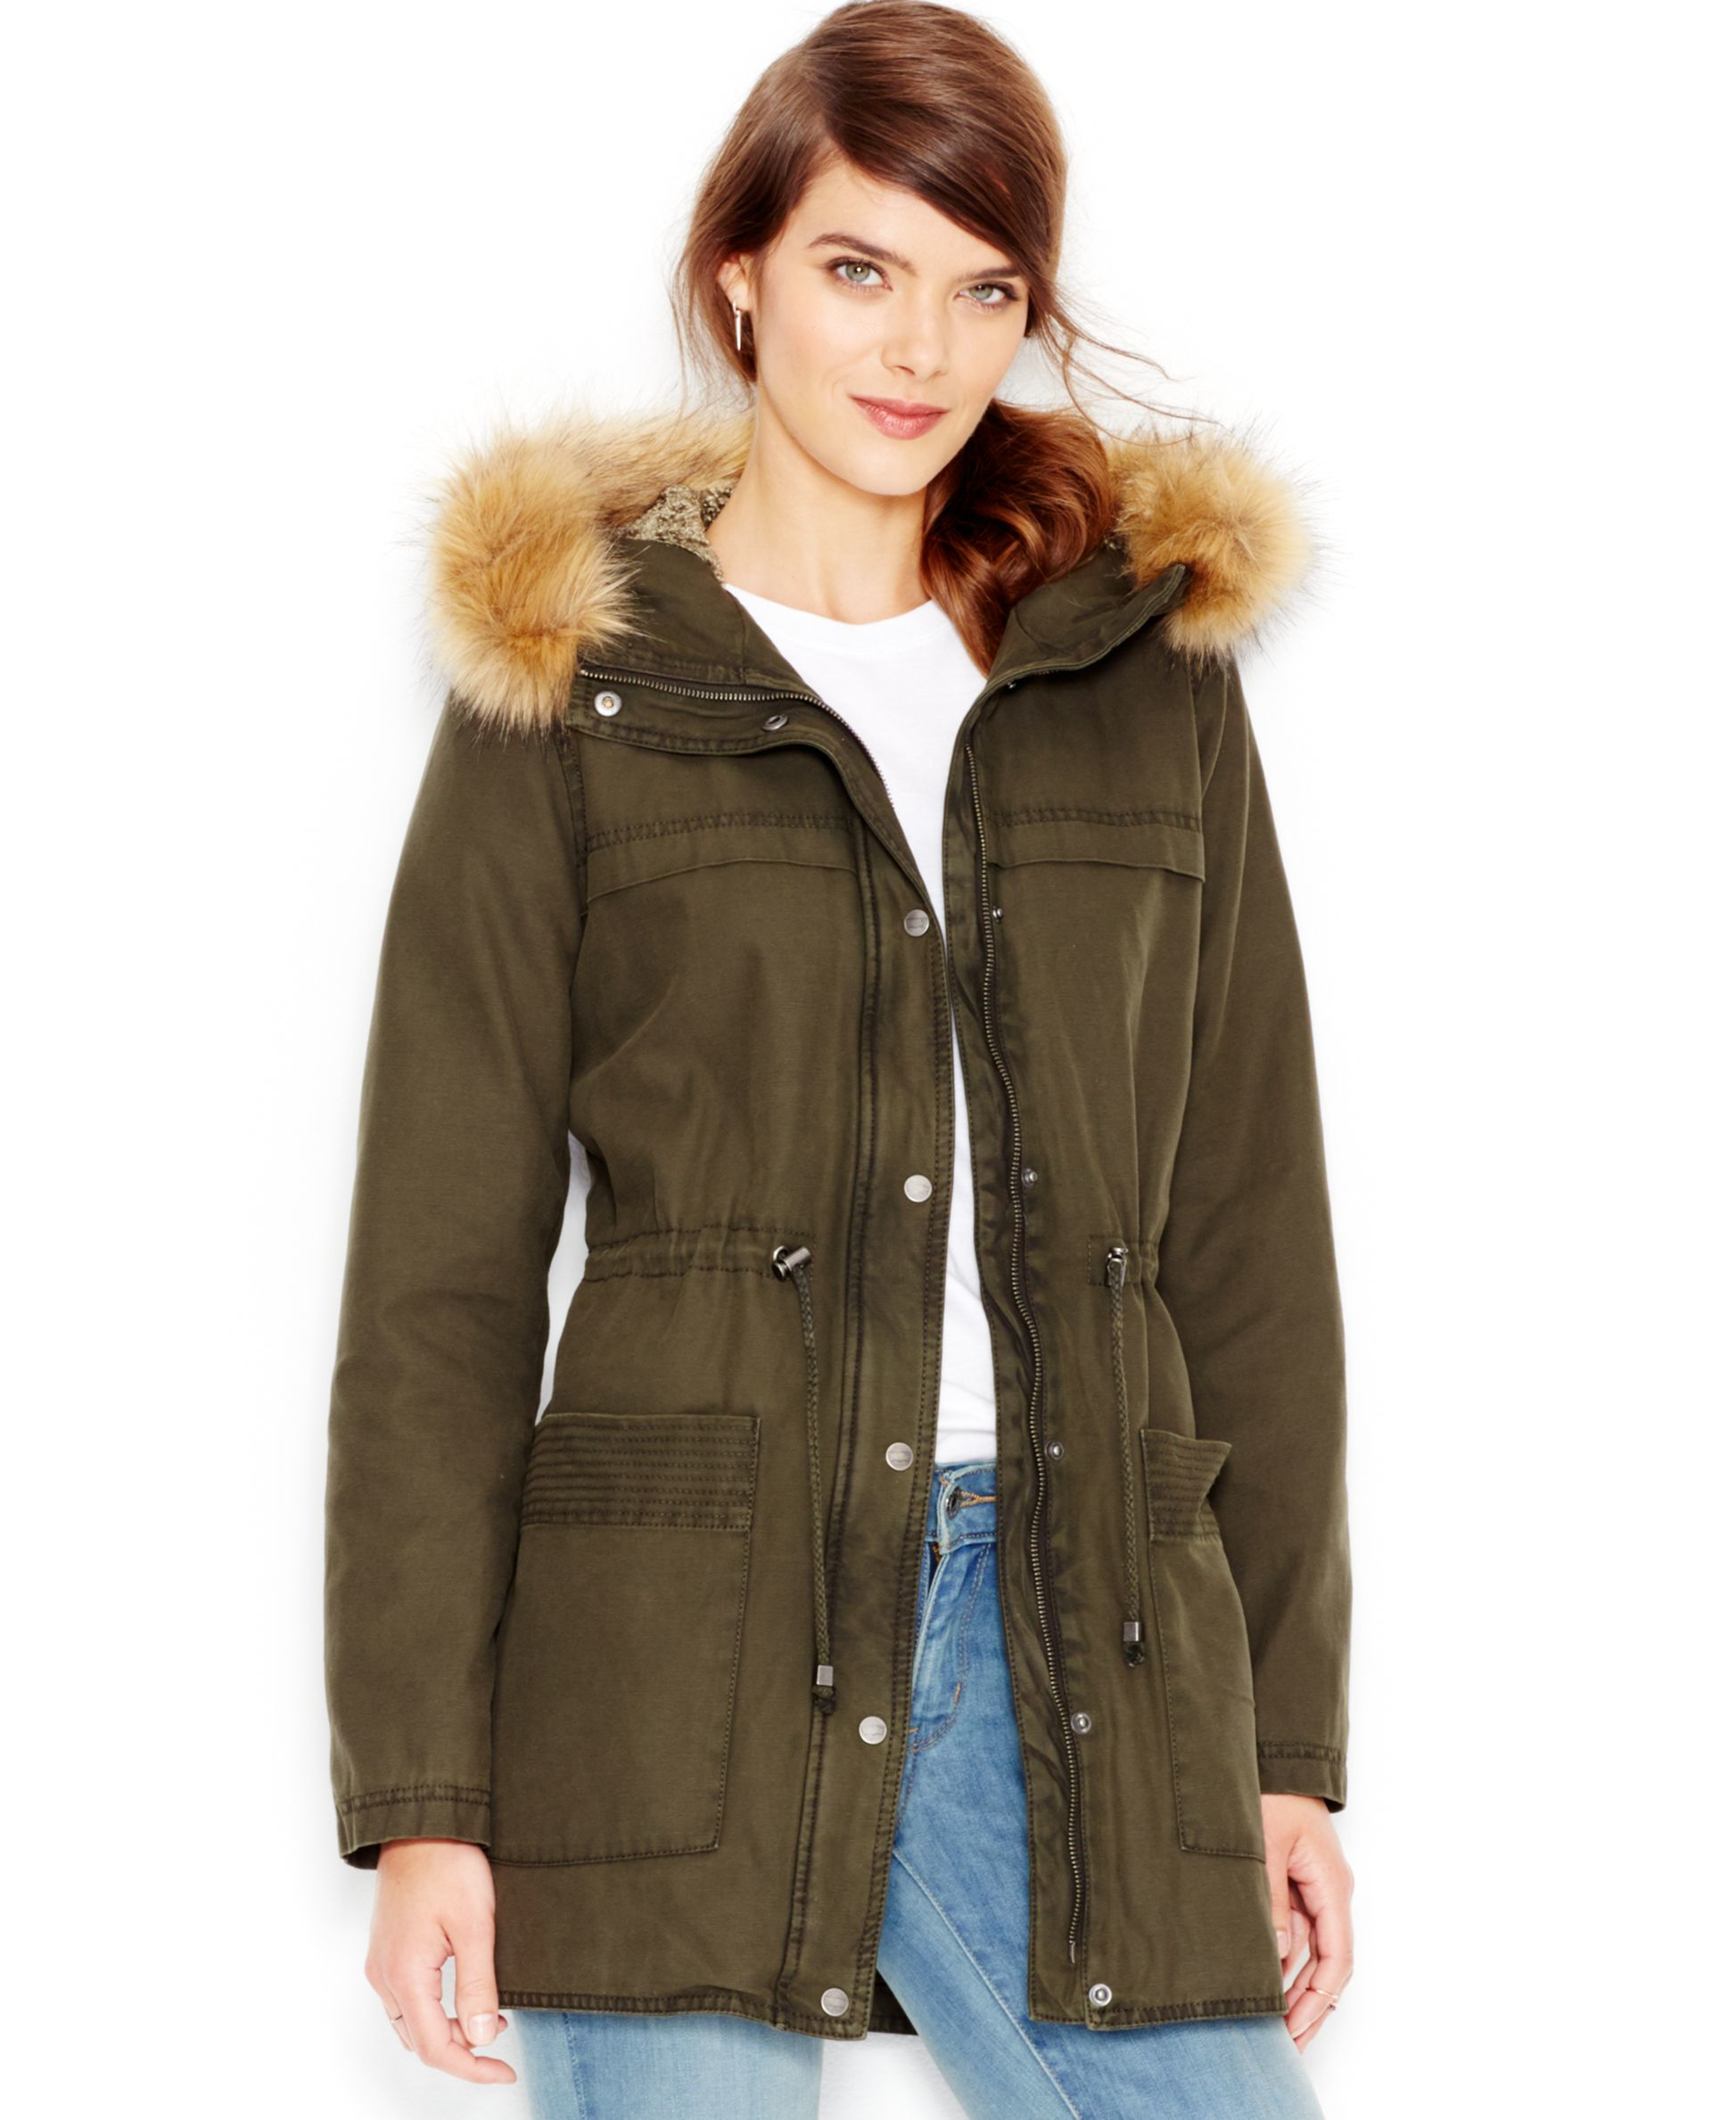 Levi's Faux-fur-trim Hooded Parka Jacket in Green | Lyst